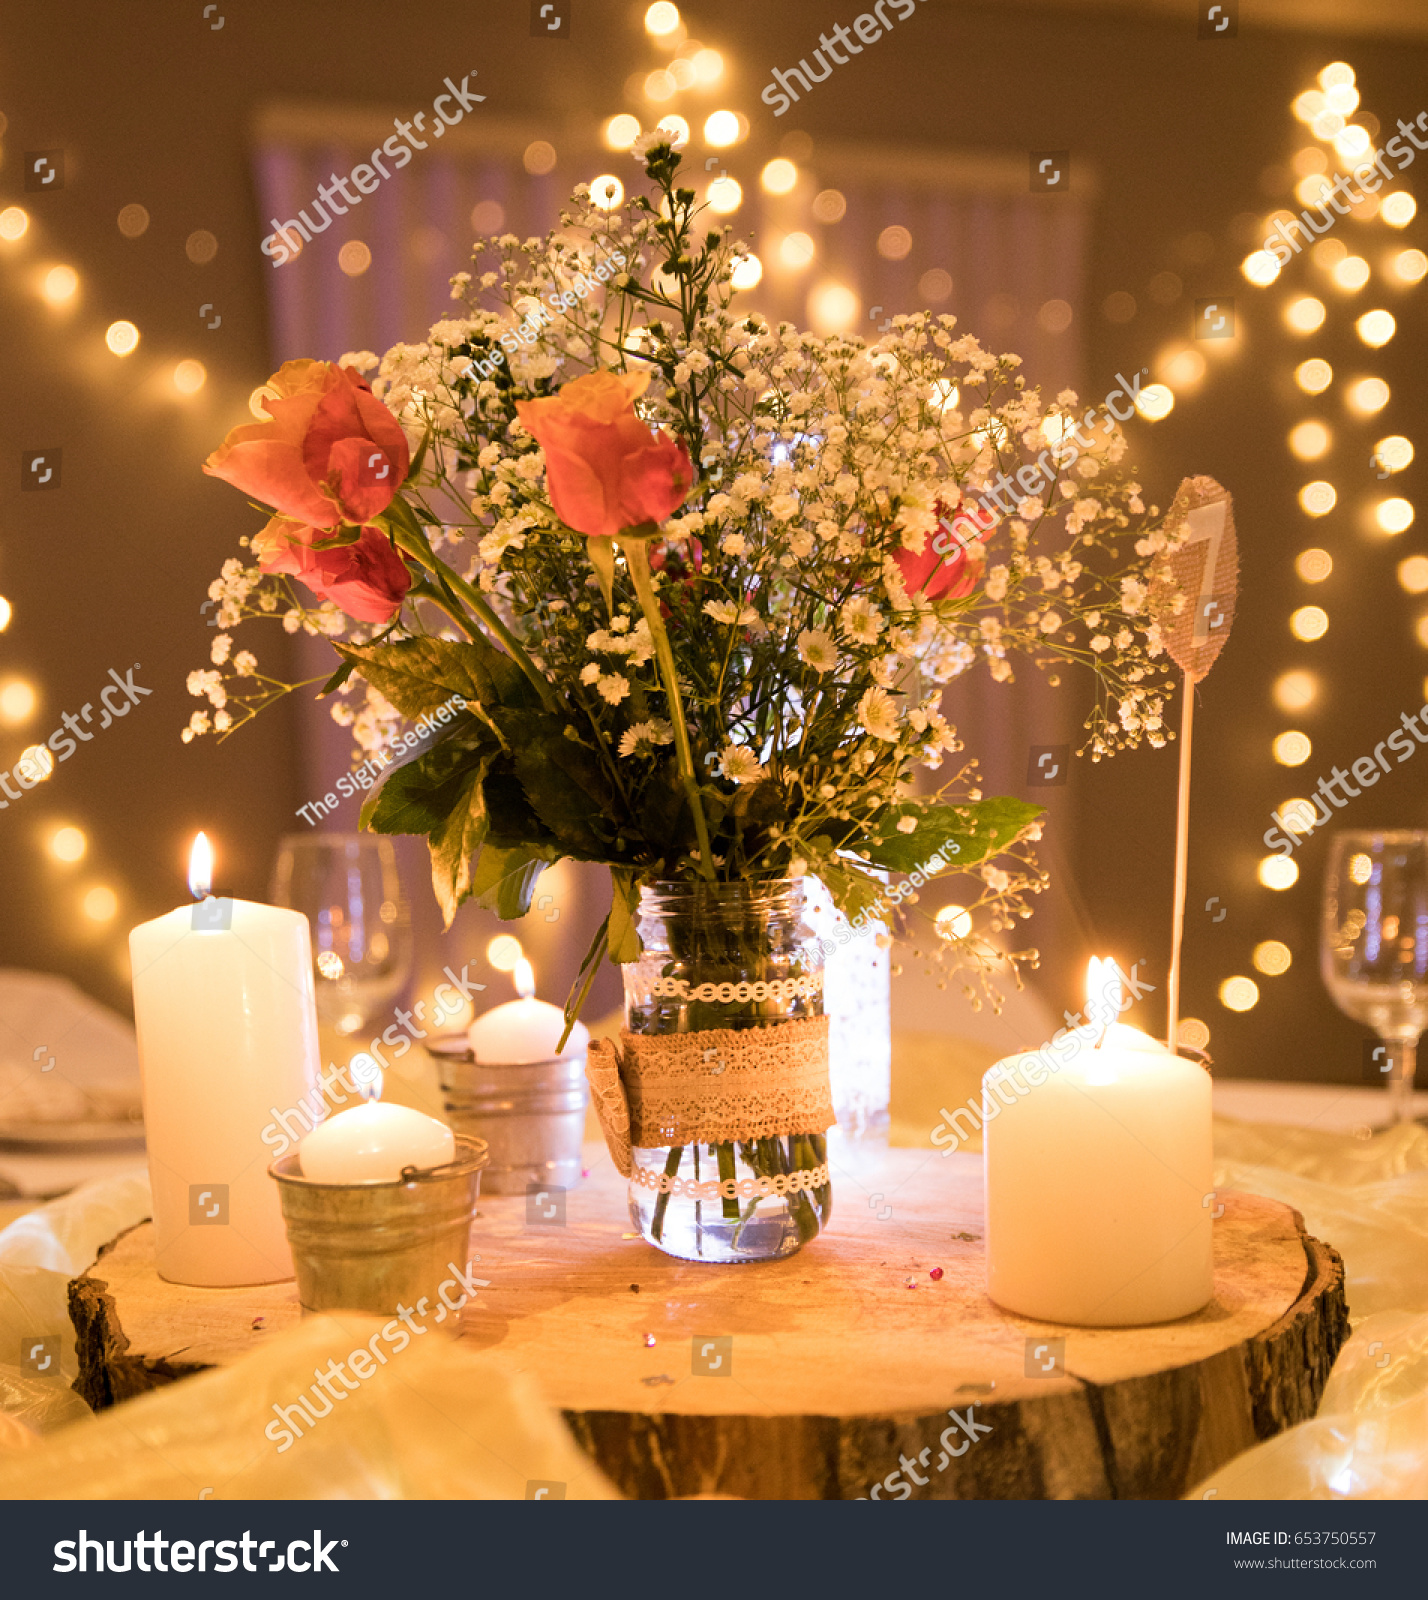 Evening Natural Wedding Decor Roses Flowers Stock Photo Edit Now